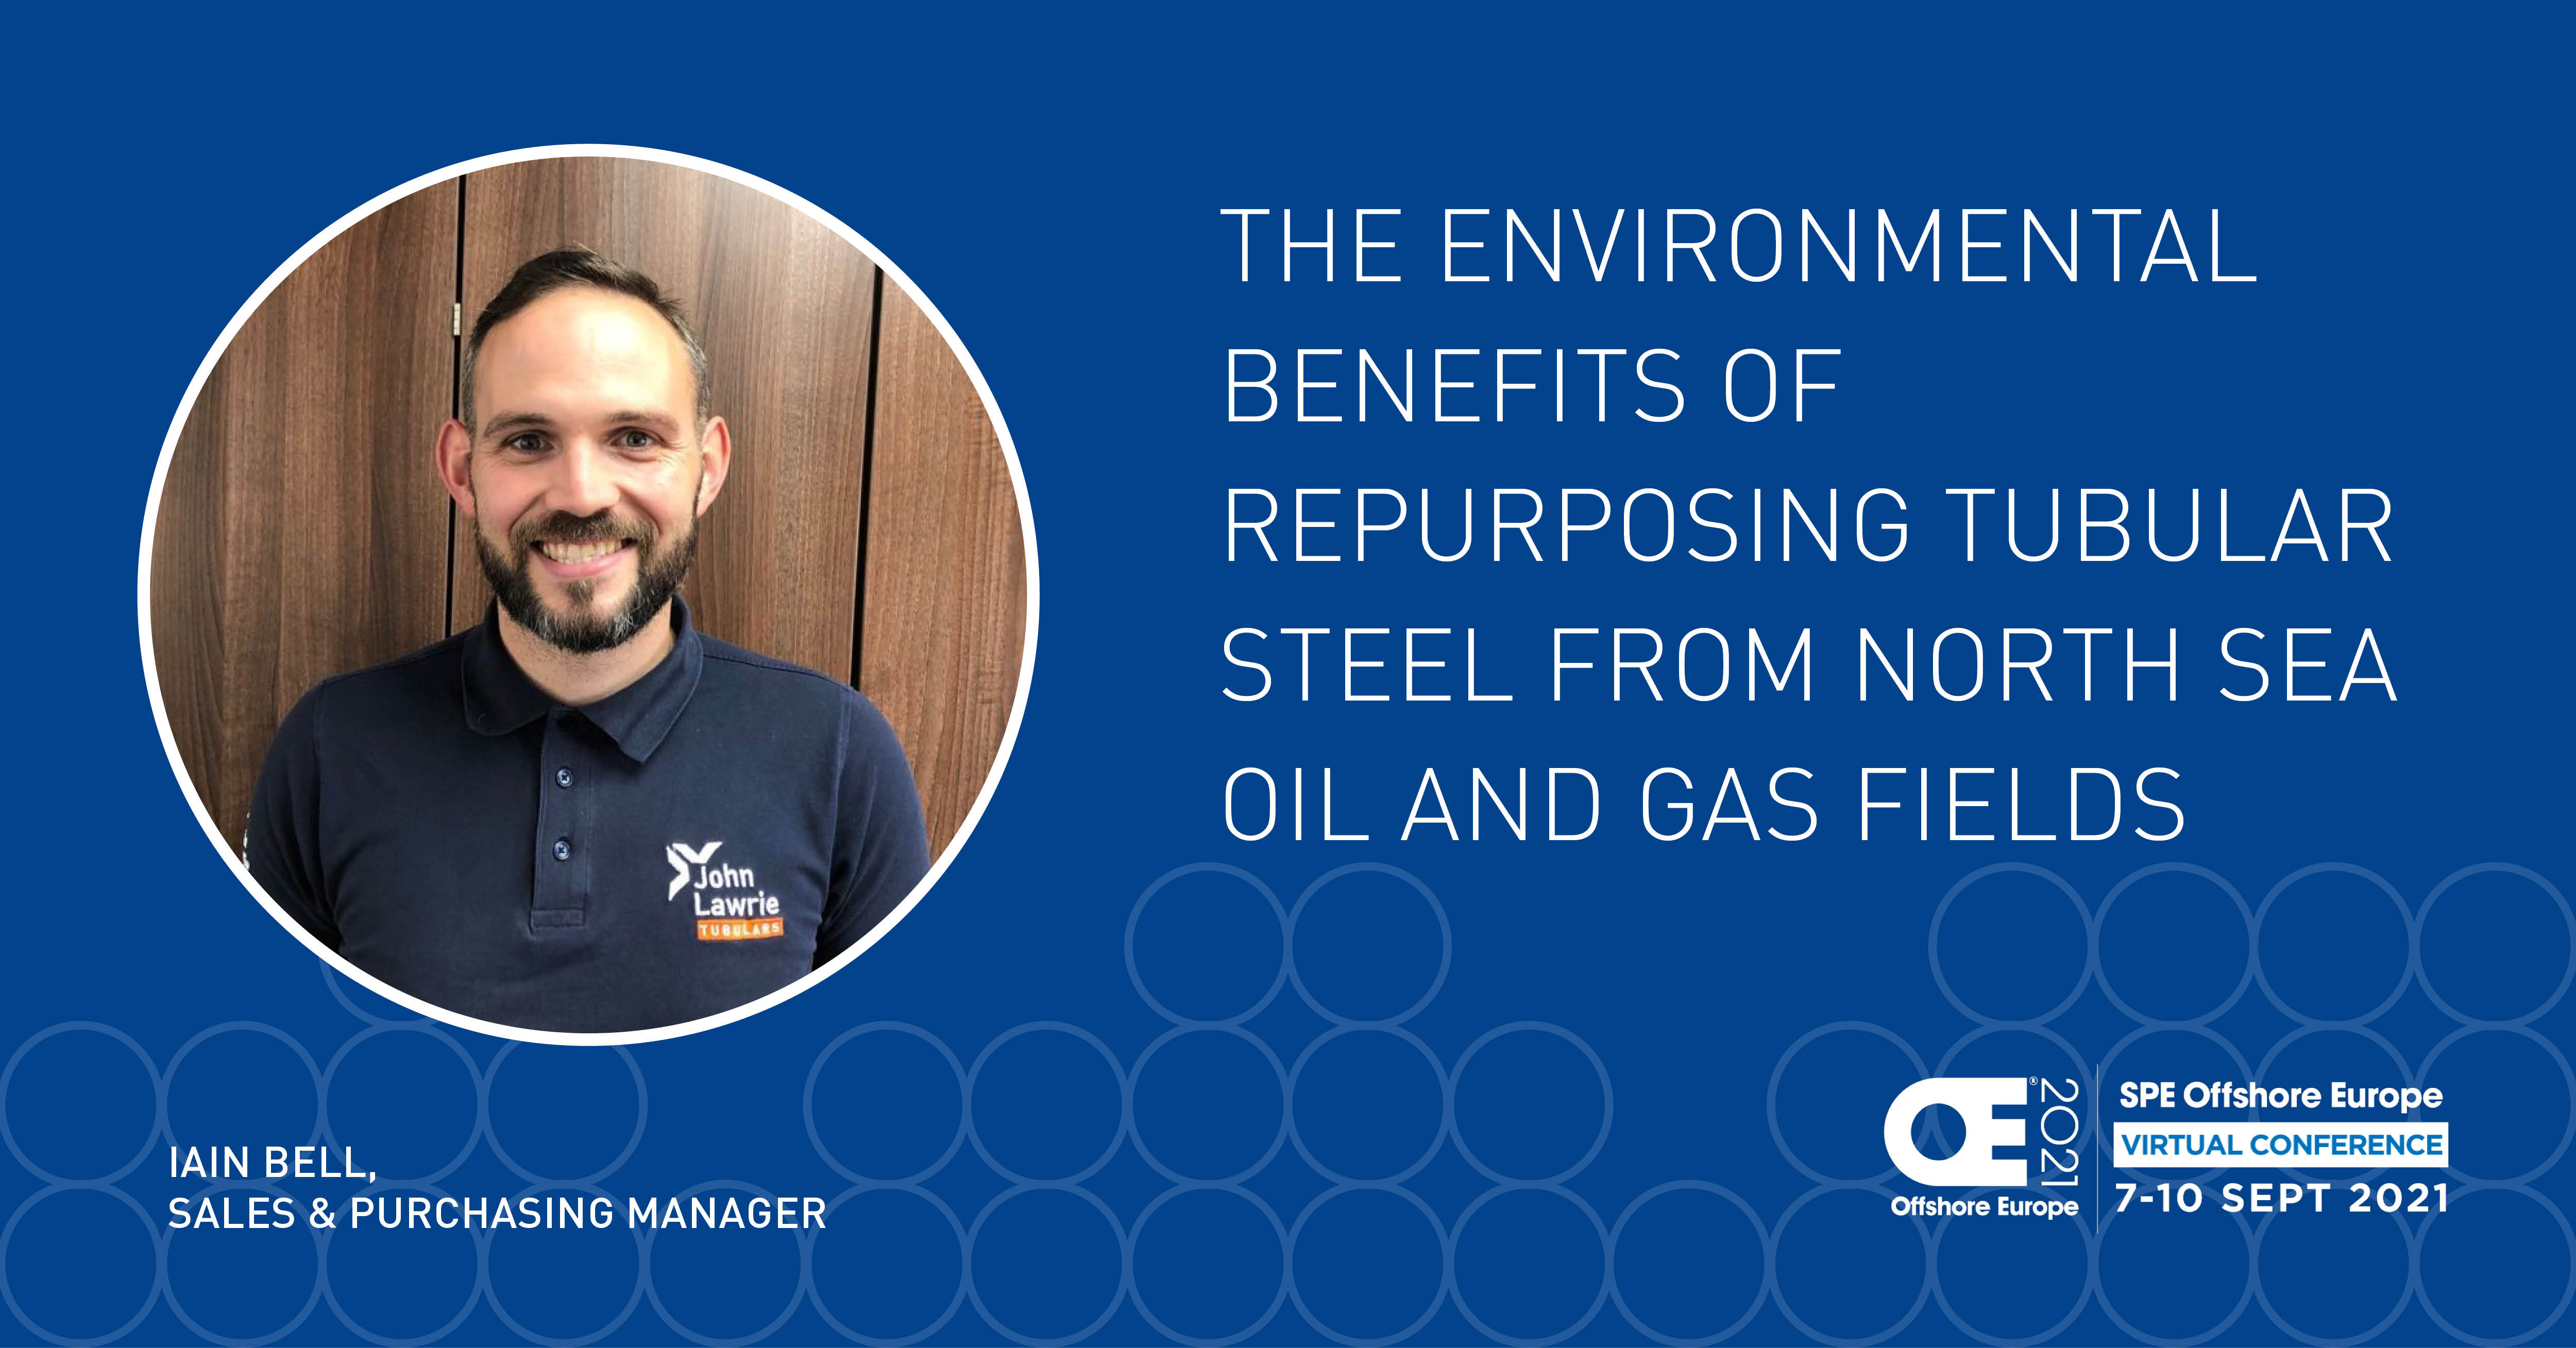 In preparation for this year's SPE Offshore Europe Virtual Conference with Iain Bell